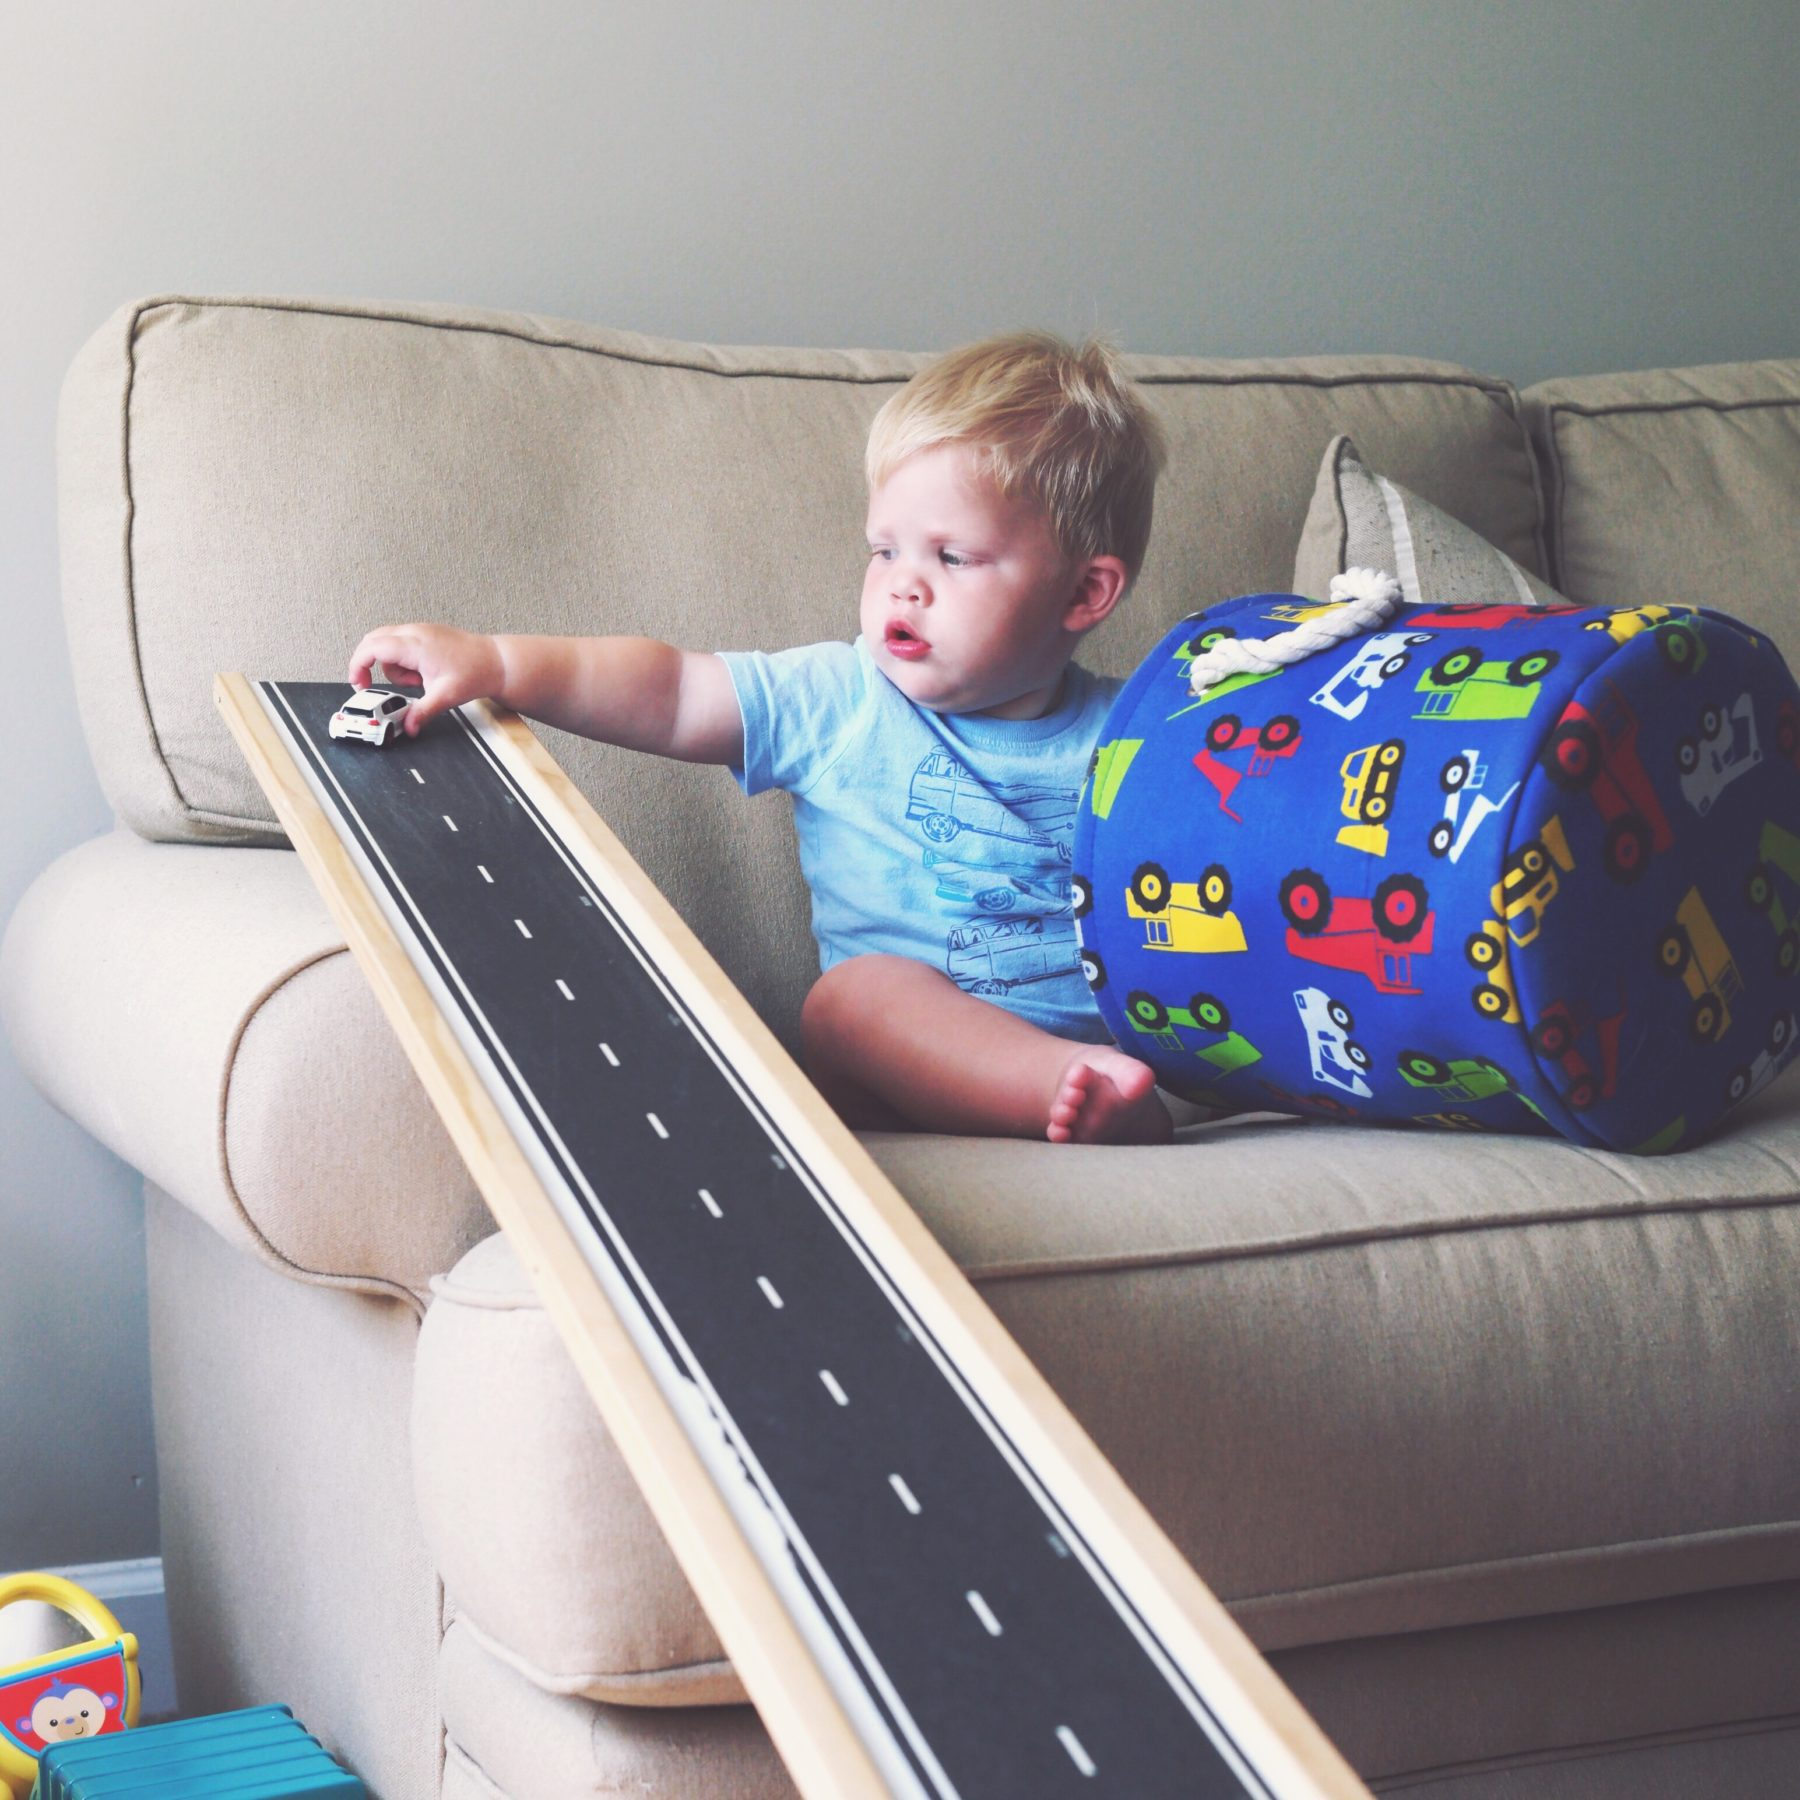 Diy Car Ramp For Kids The Small Things Blog